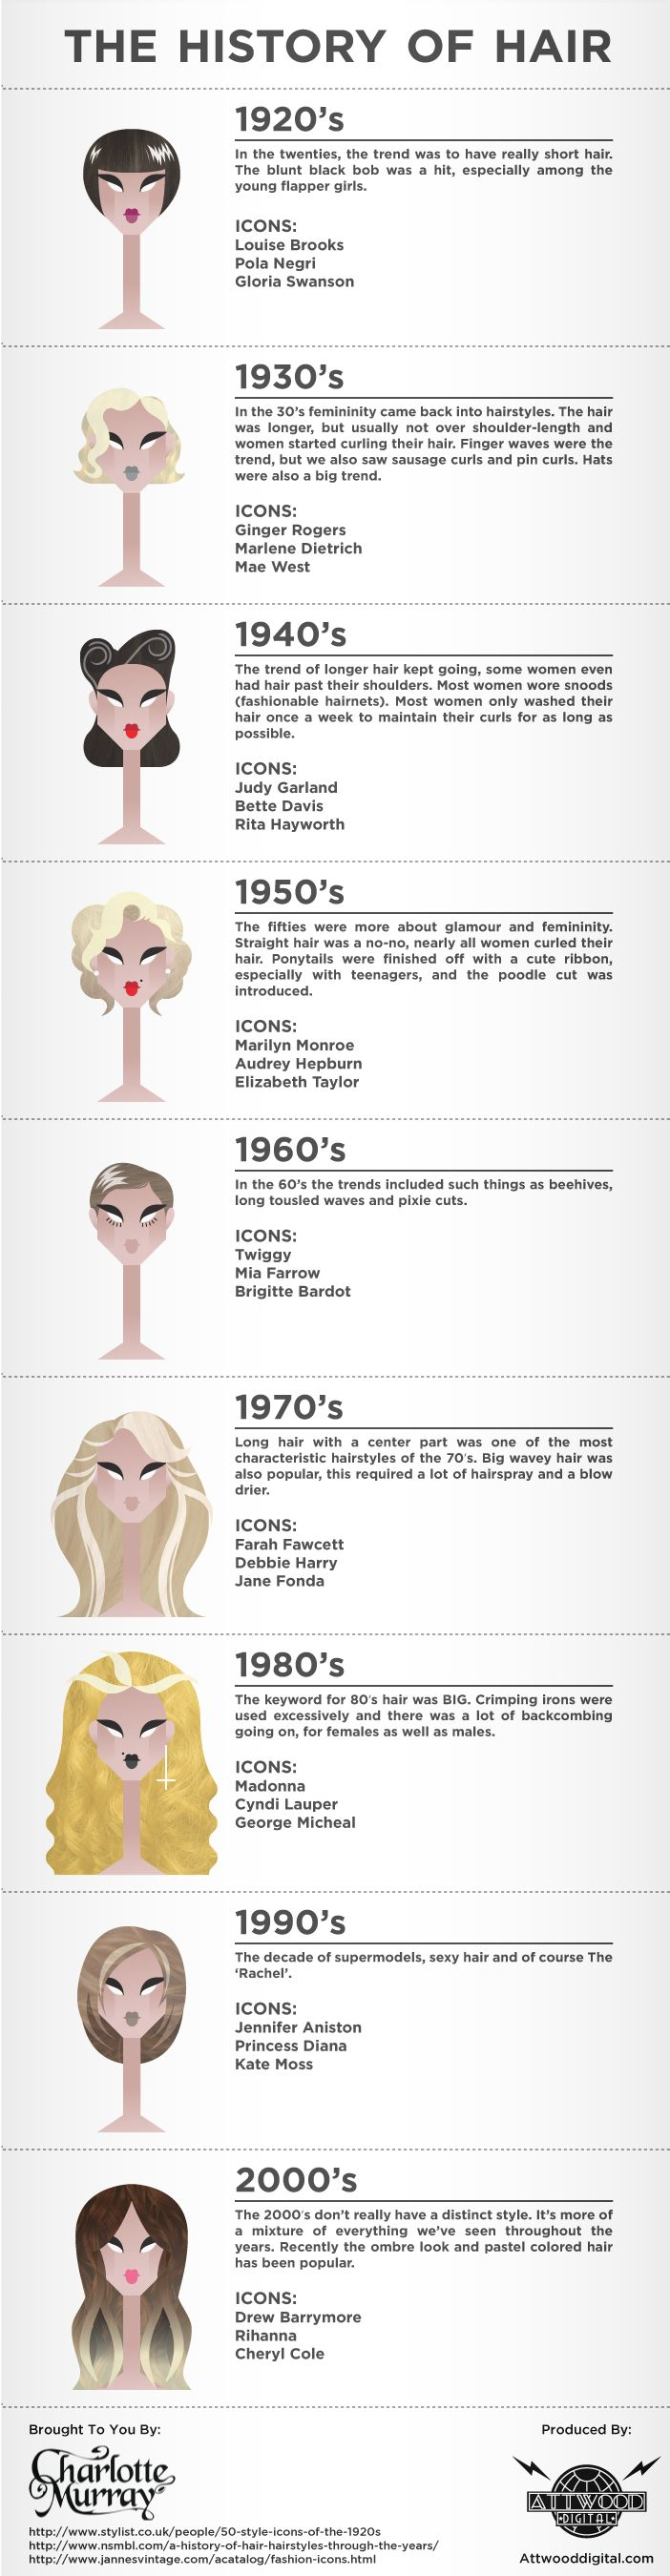 Far out and rad evolution of women's hairstyles from the 1920's until now. [via: http://visual.ly/history-hair]